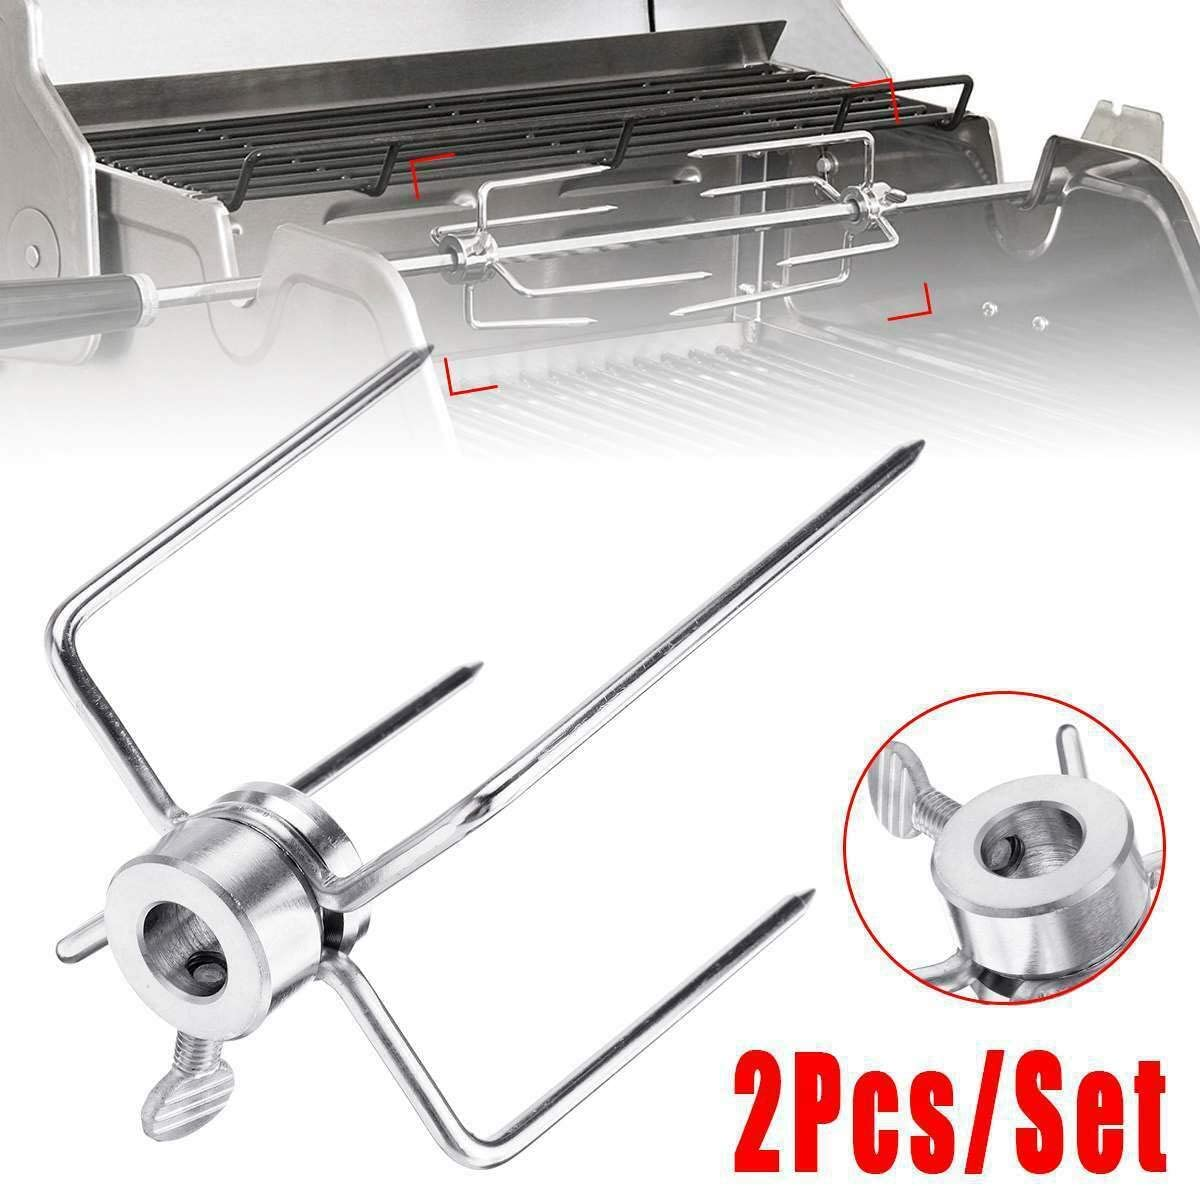 Basage 2Pcs BBQ Rotisserie Meat Forks Clamp Grill Meatpicks Stainless Steel Barbecue Skewer